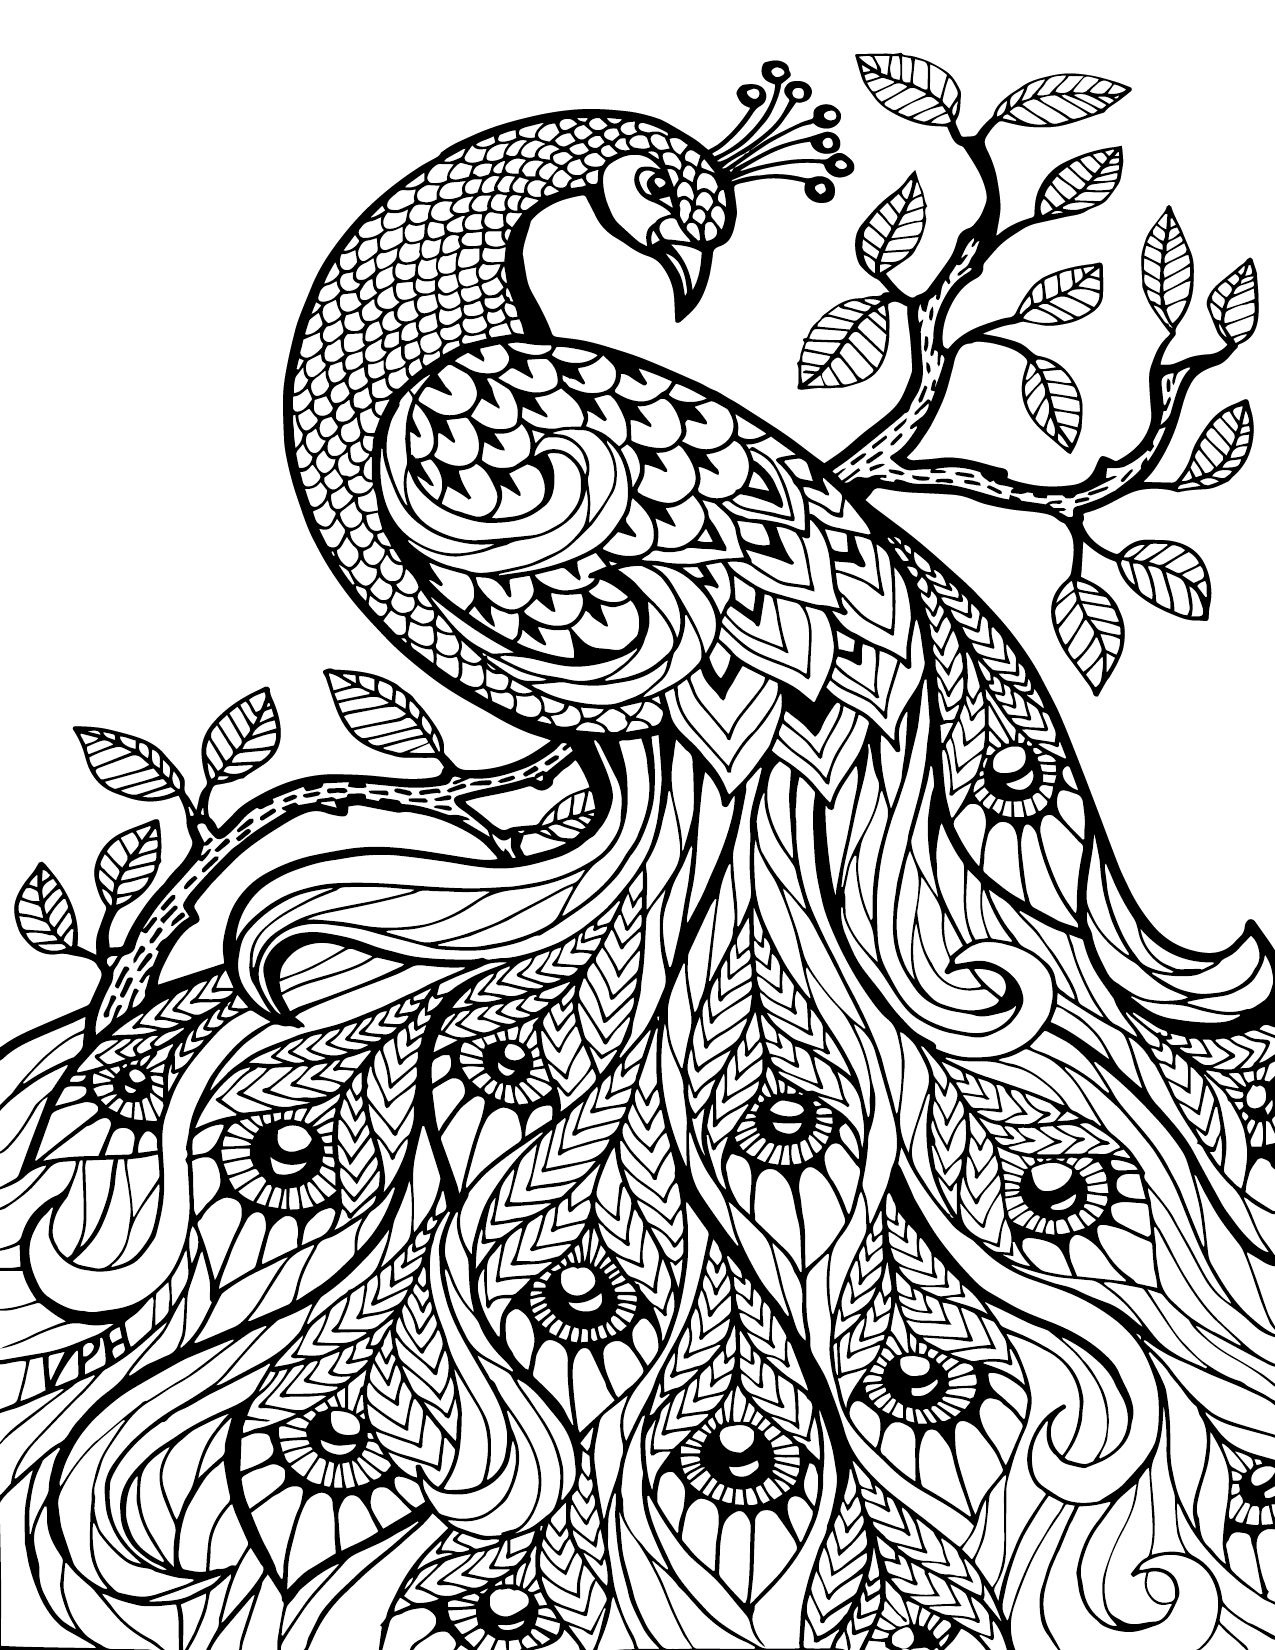 Free Printable Coloring Pages For Adults Only Image 36 Art - Free Printable Coloring Pages